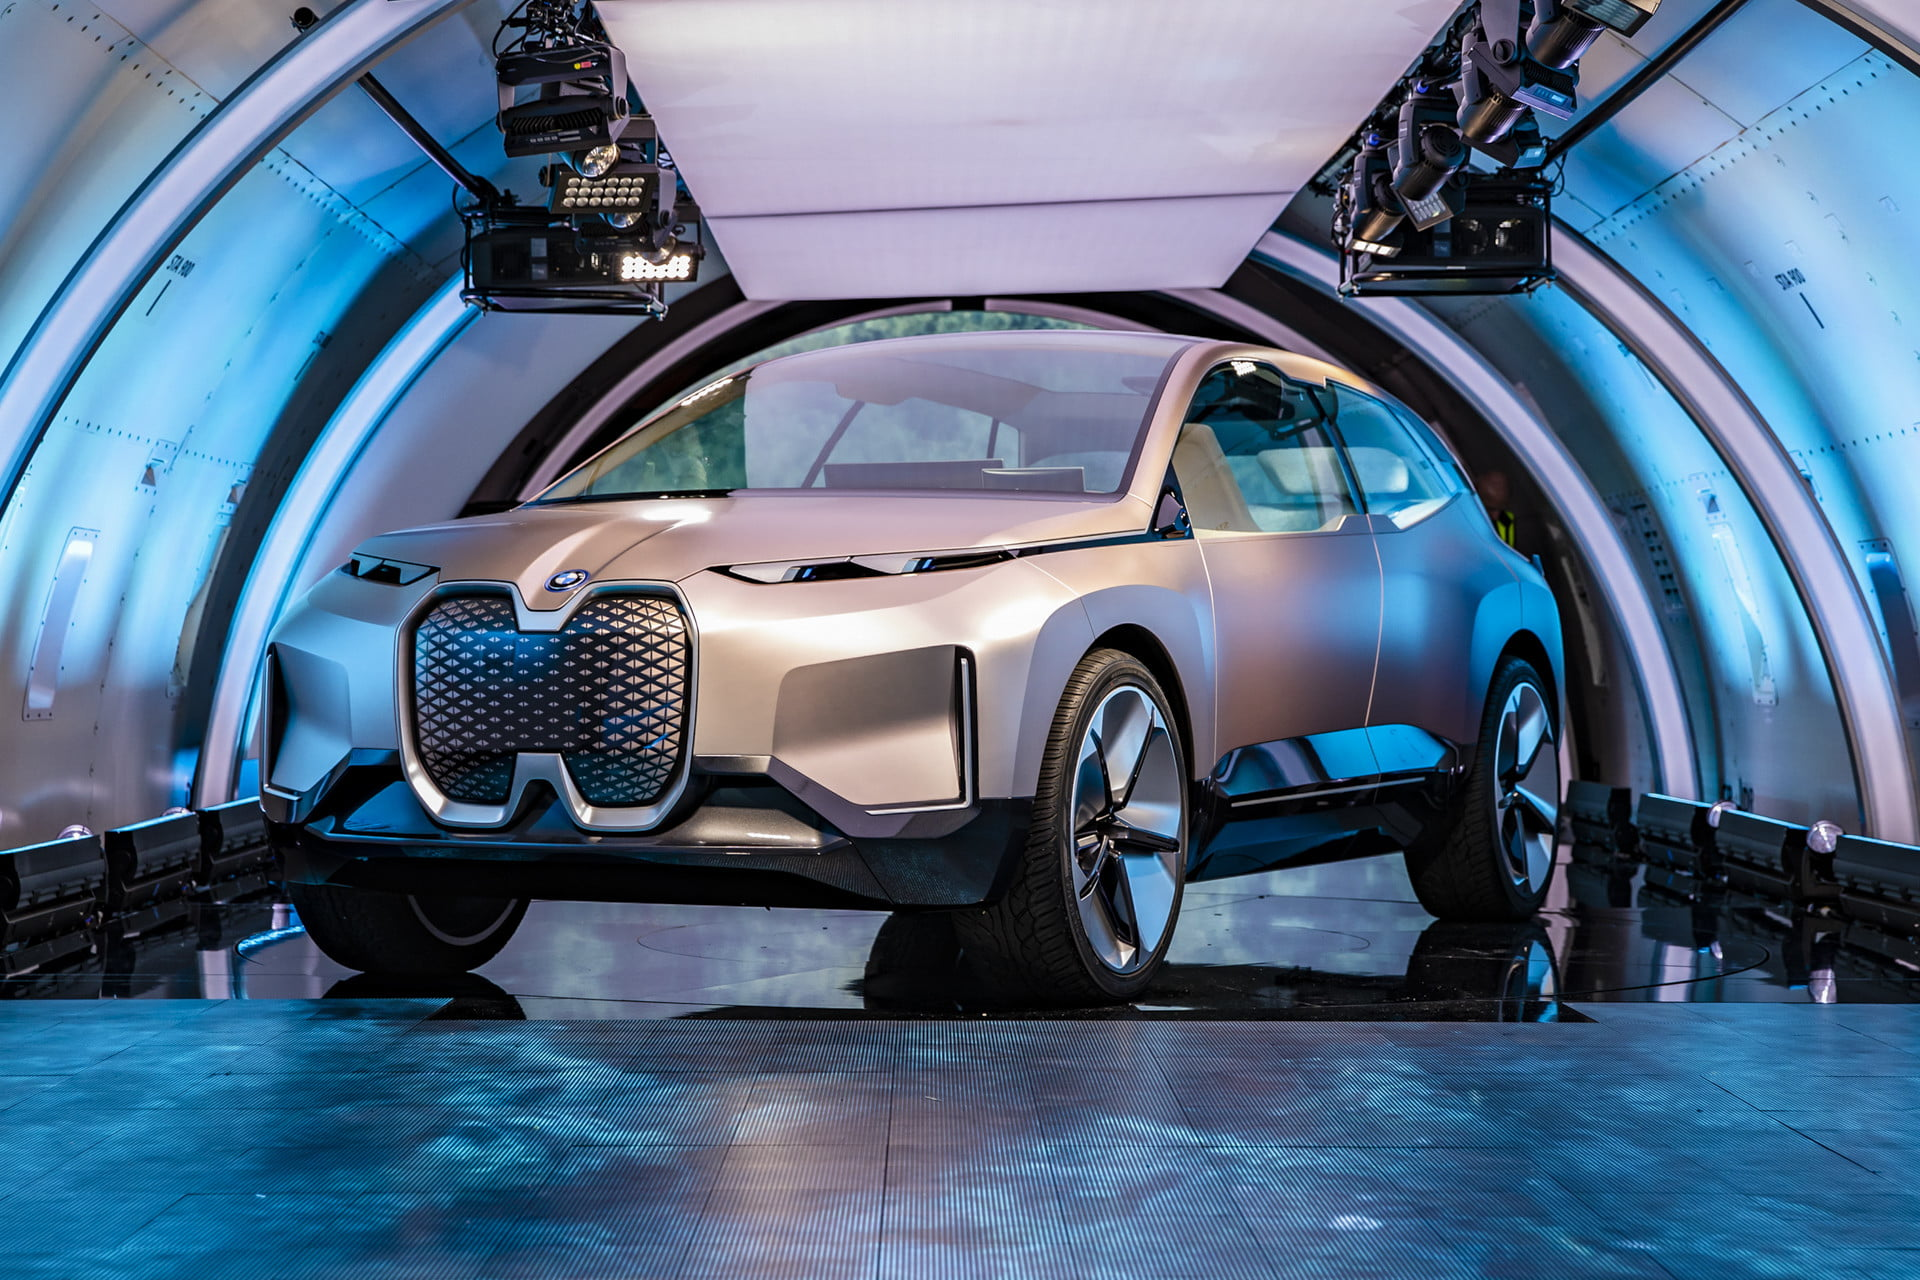 bmw-vision-inext-announcement-29463-1920x1280.jpg